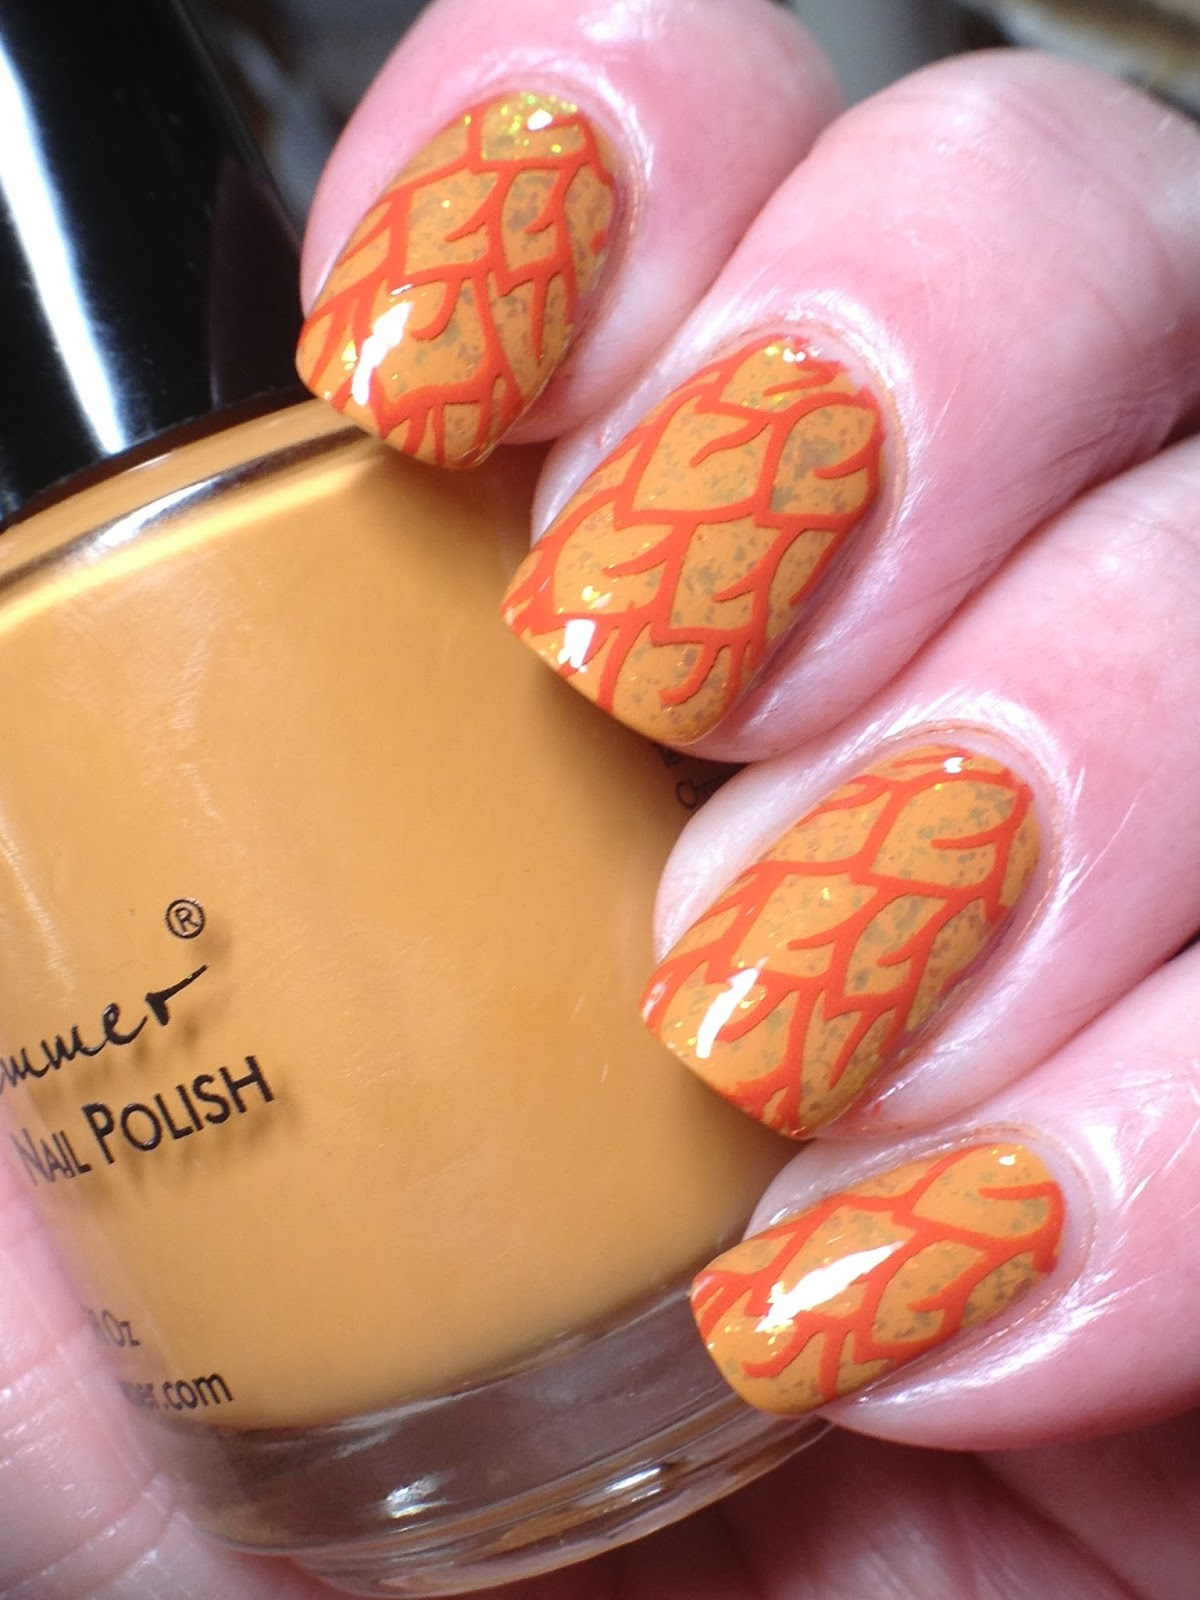 Canadian Nail Fanatic: Are We Tired of Fall Leaf Nails Yet?